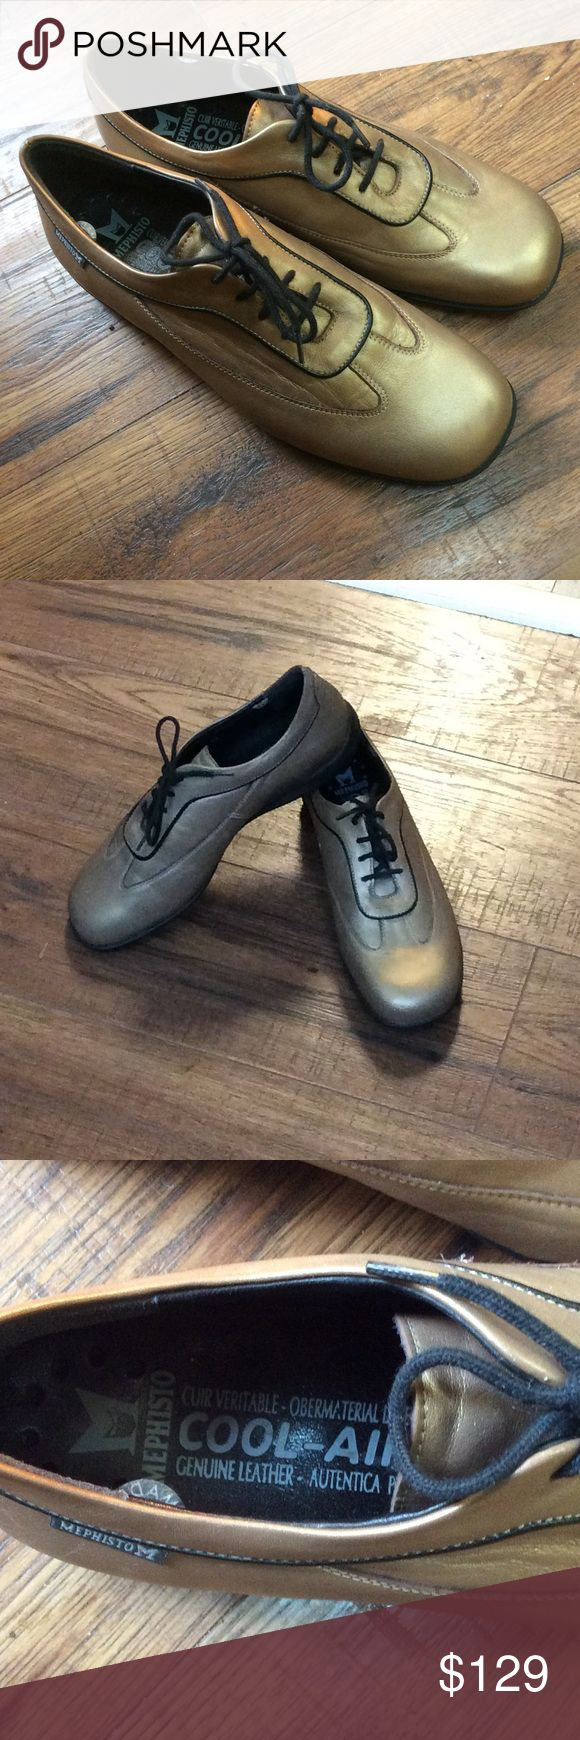 MEPHISTO COOL AIR Comfort shoes, Matte Gold, 7 POSSIBLY THE MOST COMFORTABLE WALKING SHOE, MEPHISTO has been making these in France for many years.  Coveted by many, these are hard to get! MEPHISTO Shoes Athletic Shoes